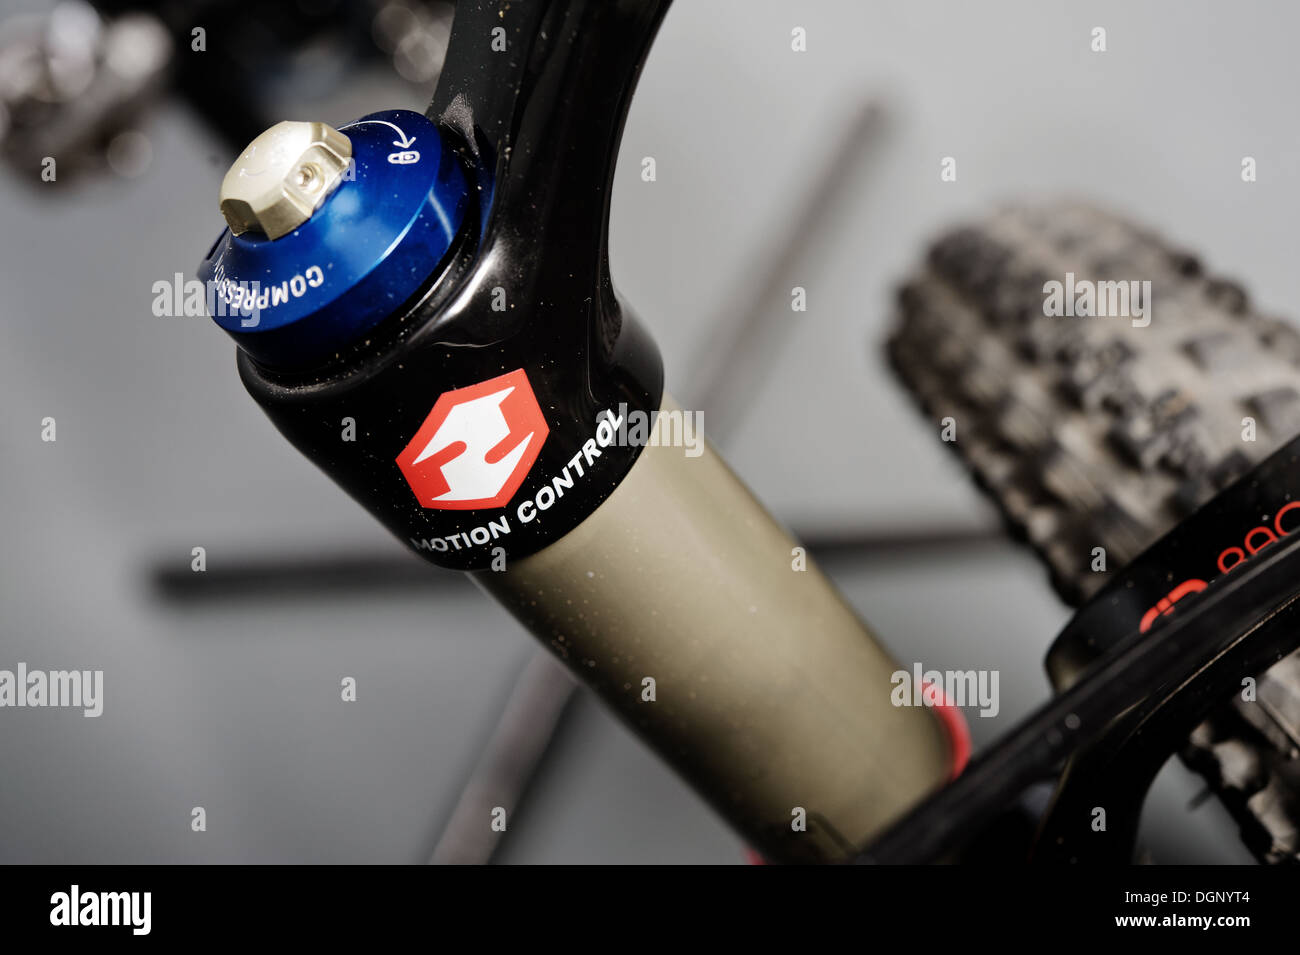 Front fork of the mtb bicycle - Stock Image